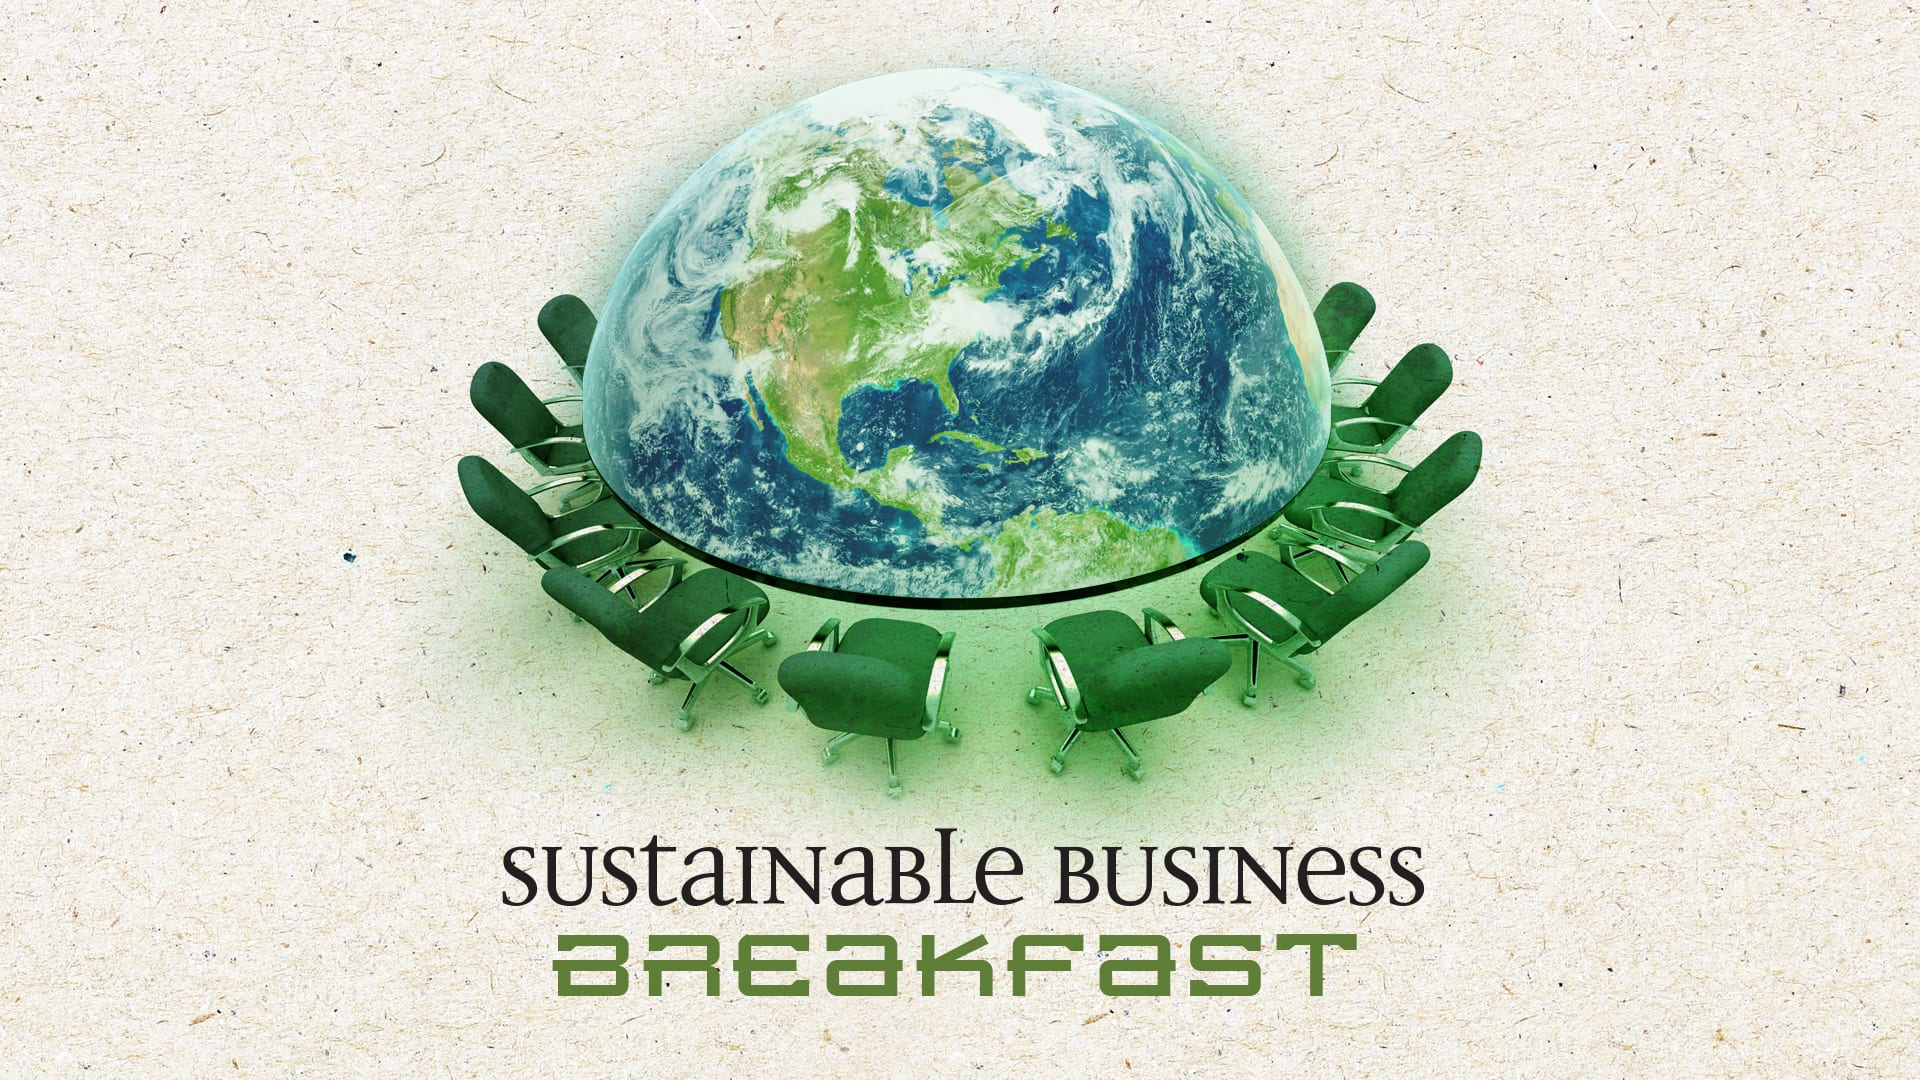 Sustainable Business Breakfast at the Fairmont Hotel Pittsburgh